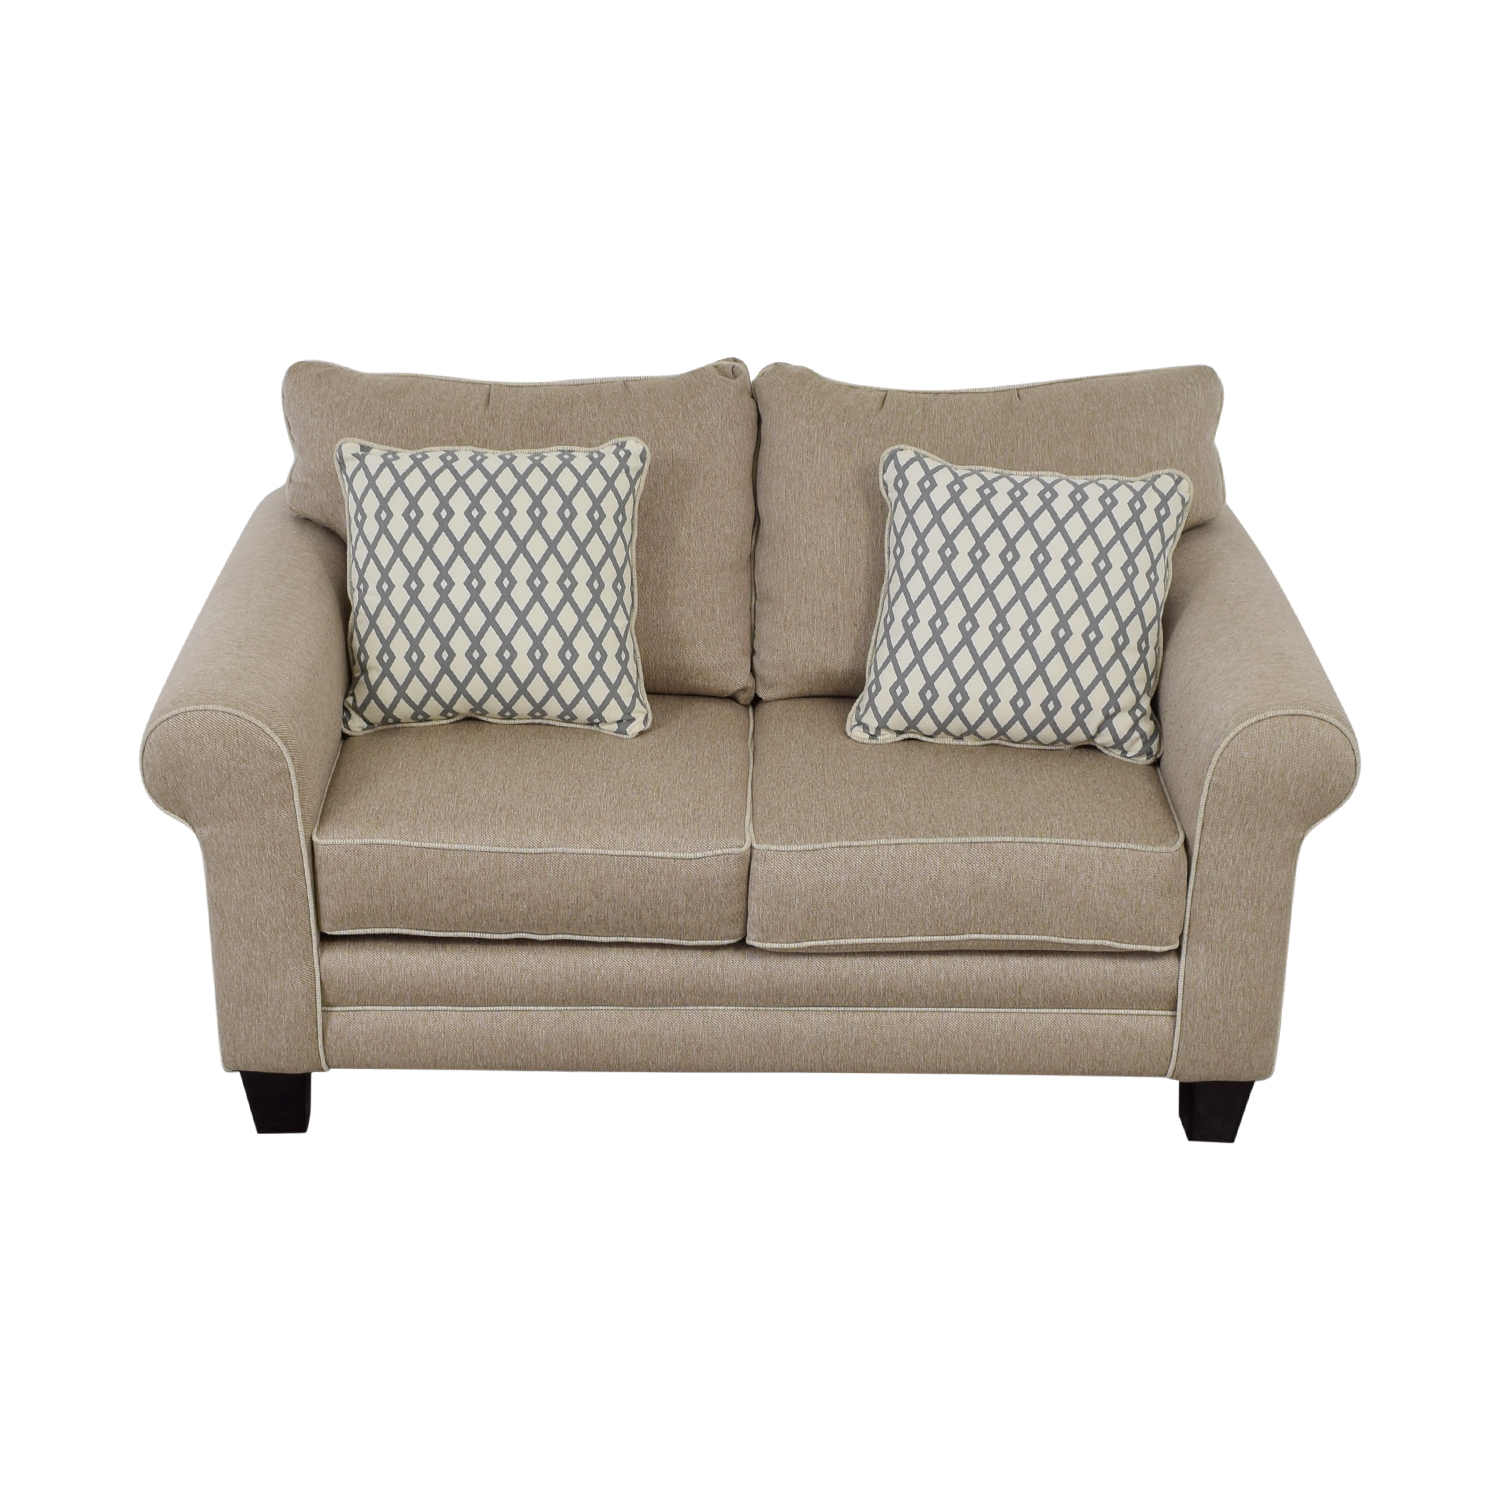 buy Raymour & Flanigan Beige Loveseat Raymour & Flanigan